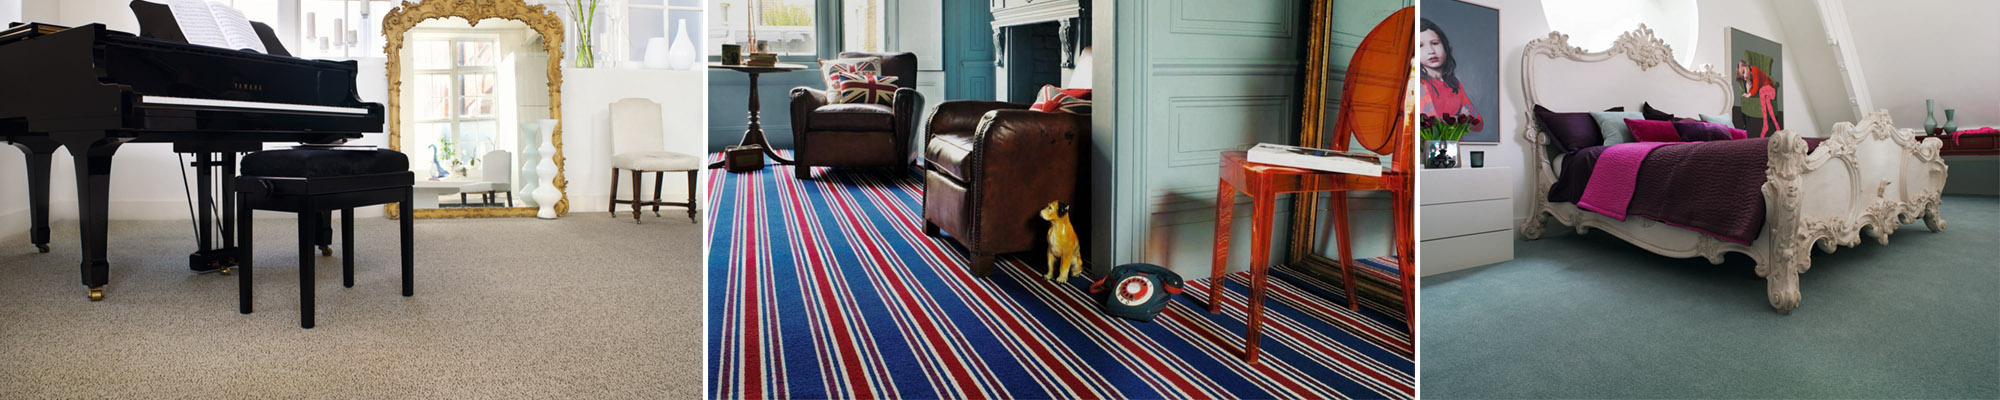 Carpets Exeter